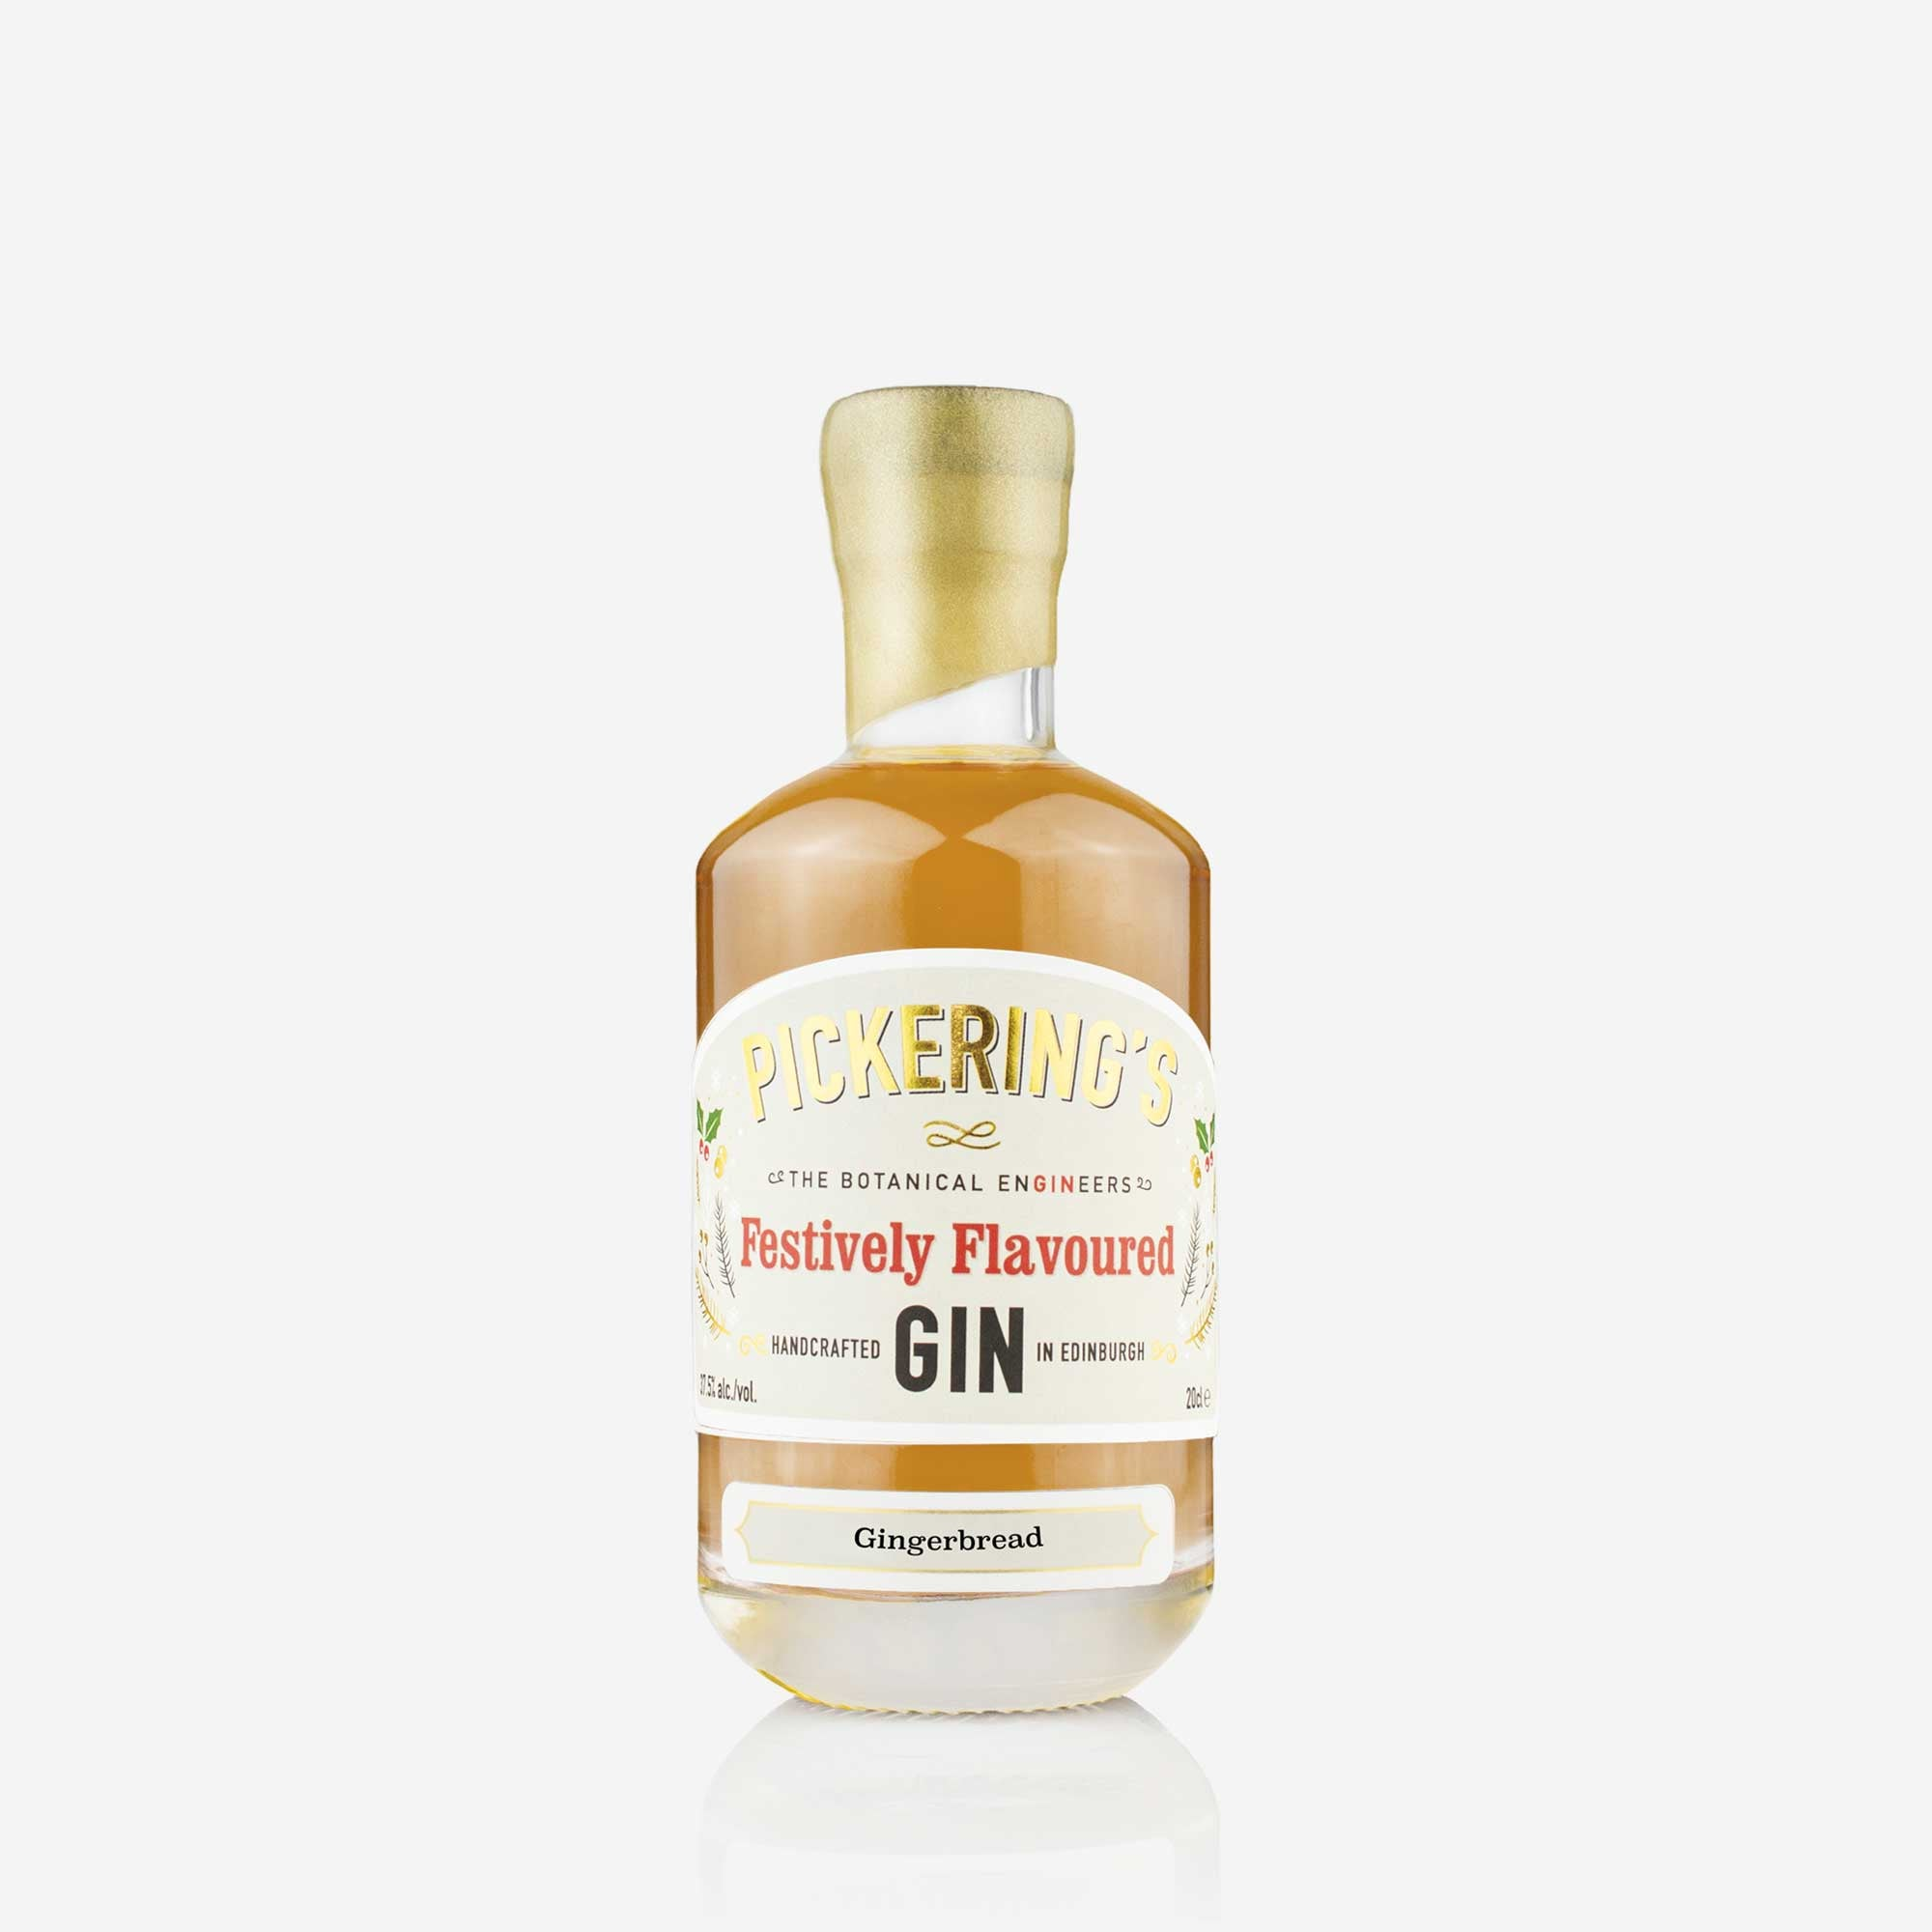 Pickering's Gingerbread Gin 20cl